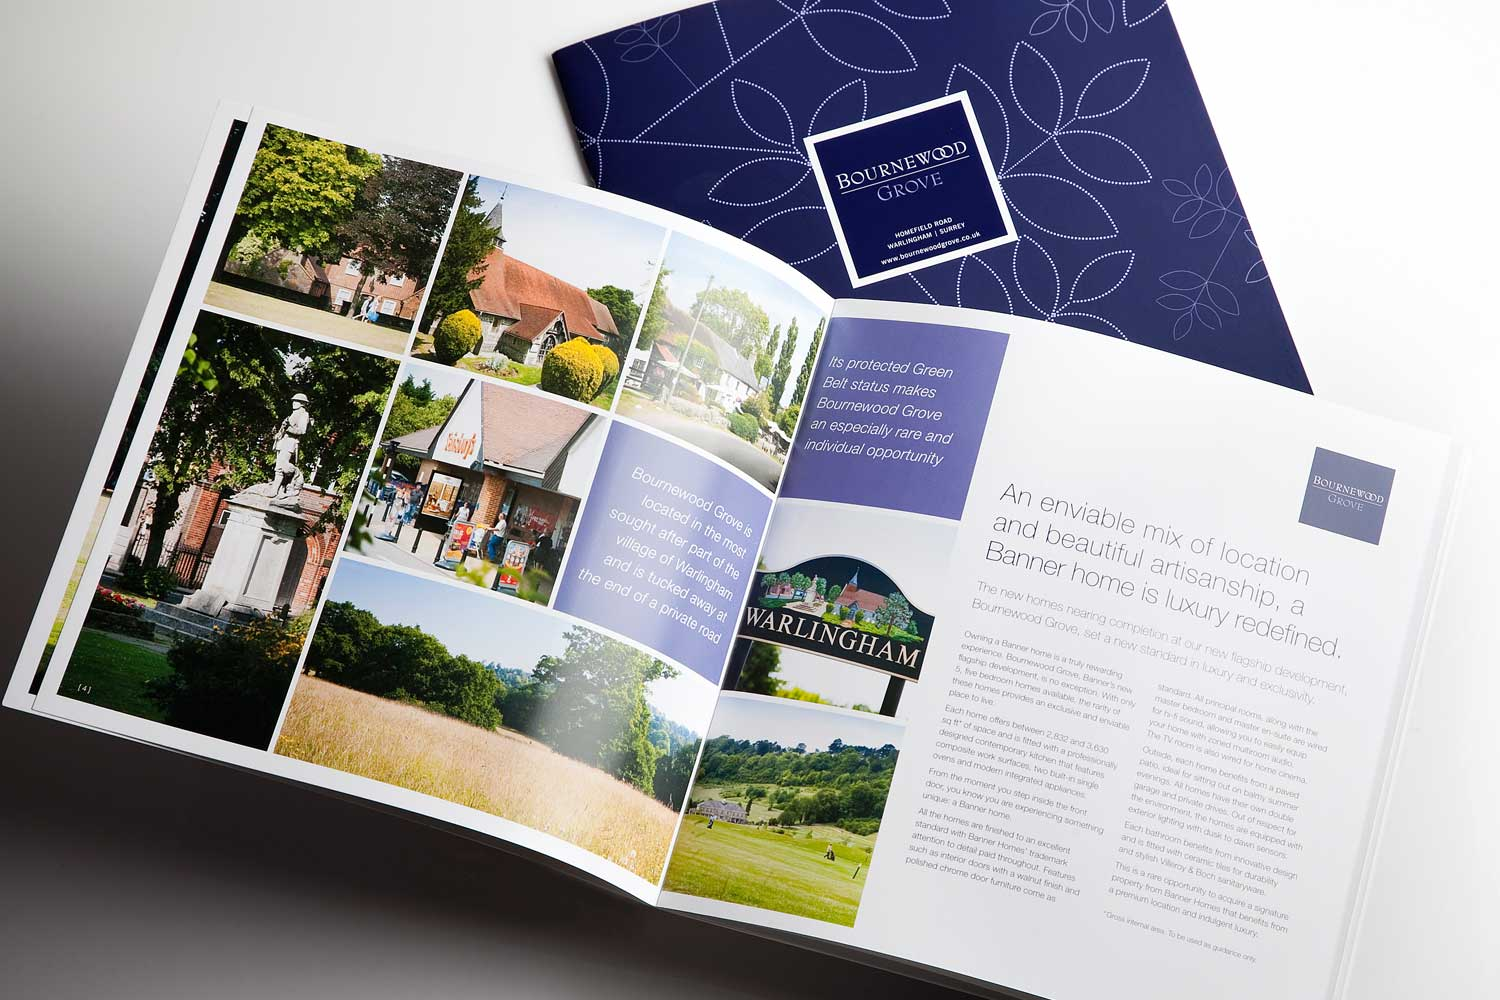 property-brochure-design-for-a-new-homes-development.jpg